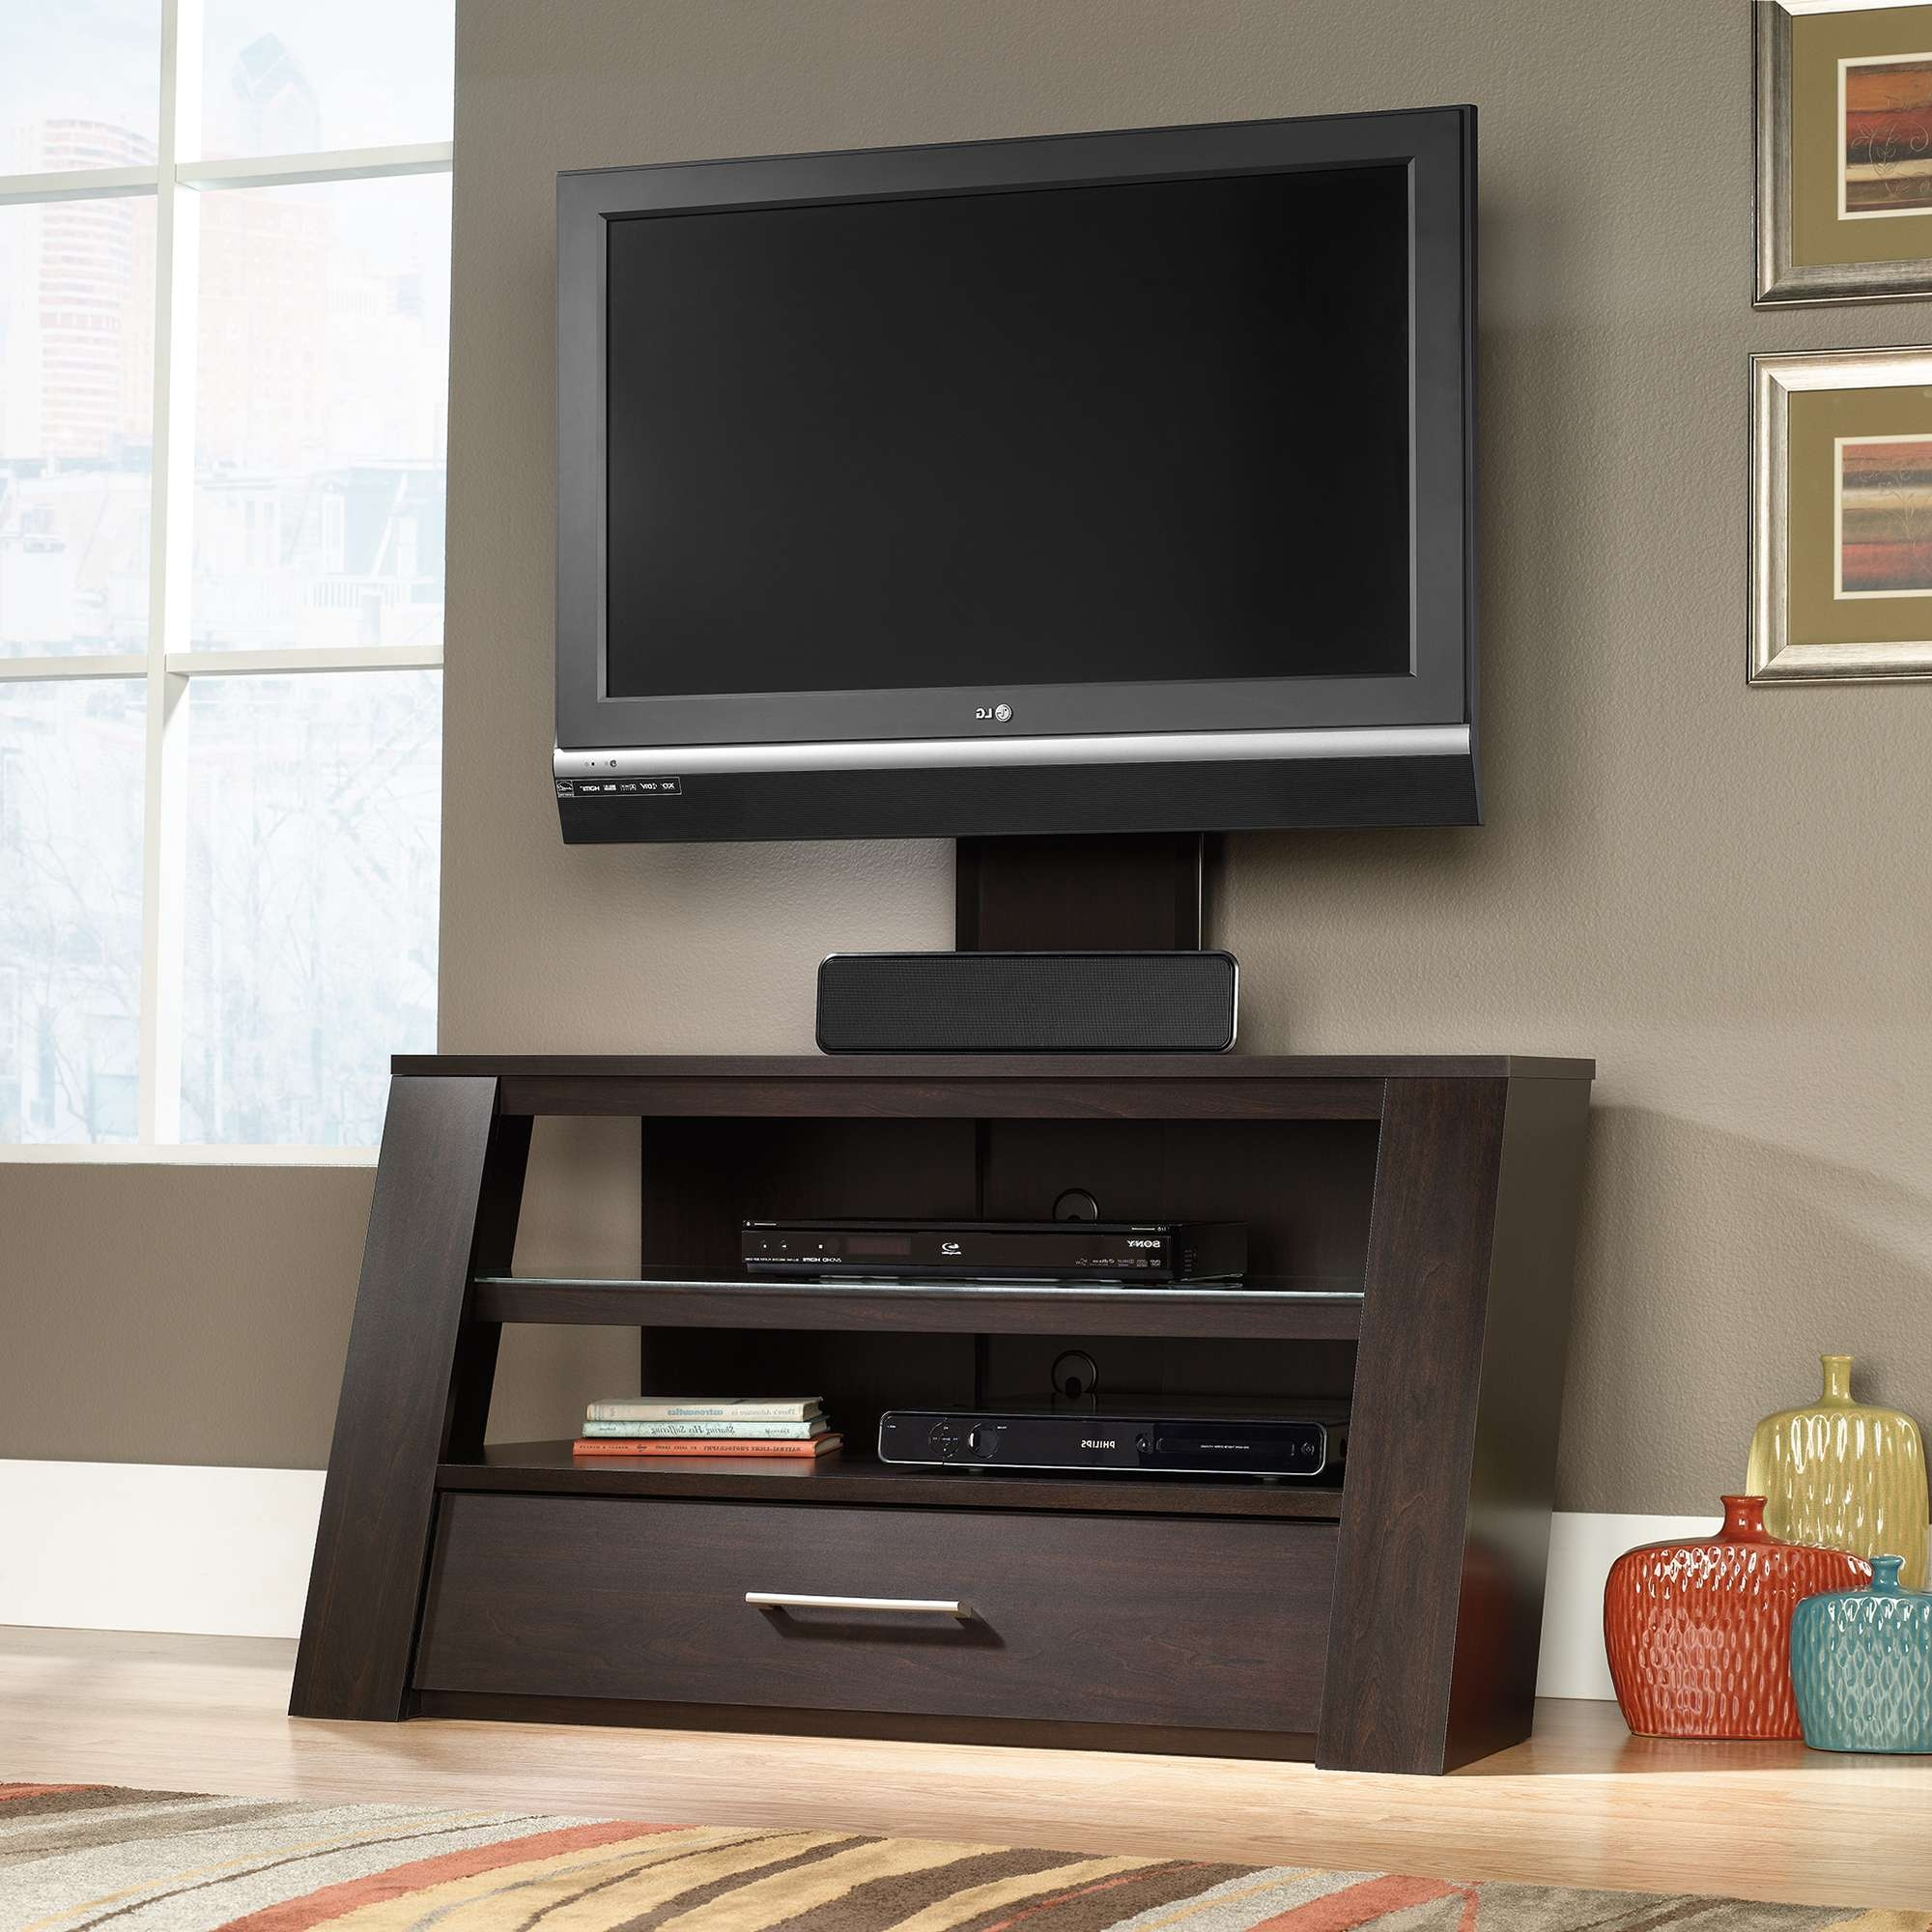 Sauder Select   Tv Stand With Optional Mount   414143   Sauder With Regard To Cabinet Tv Stands (View 6 of 15)